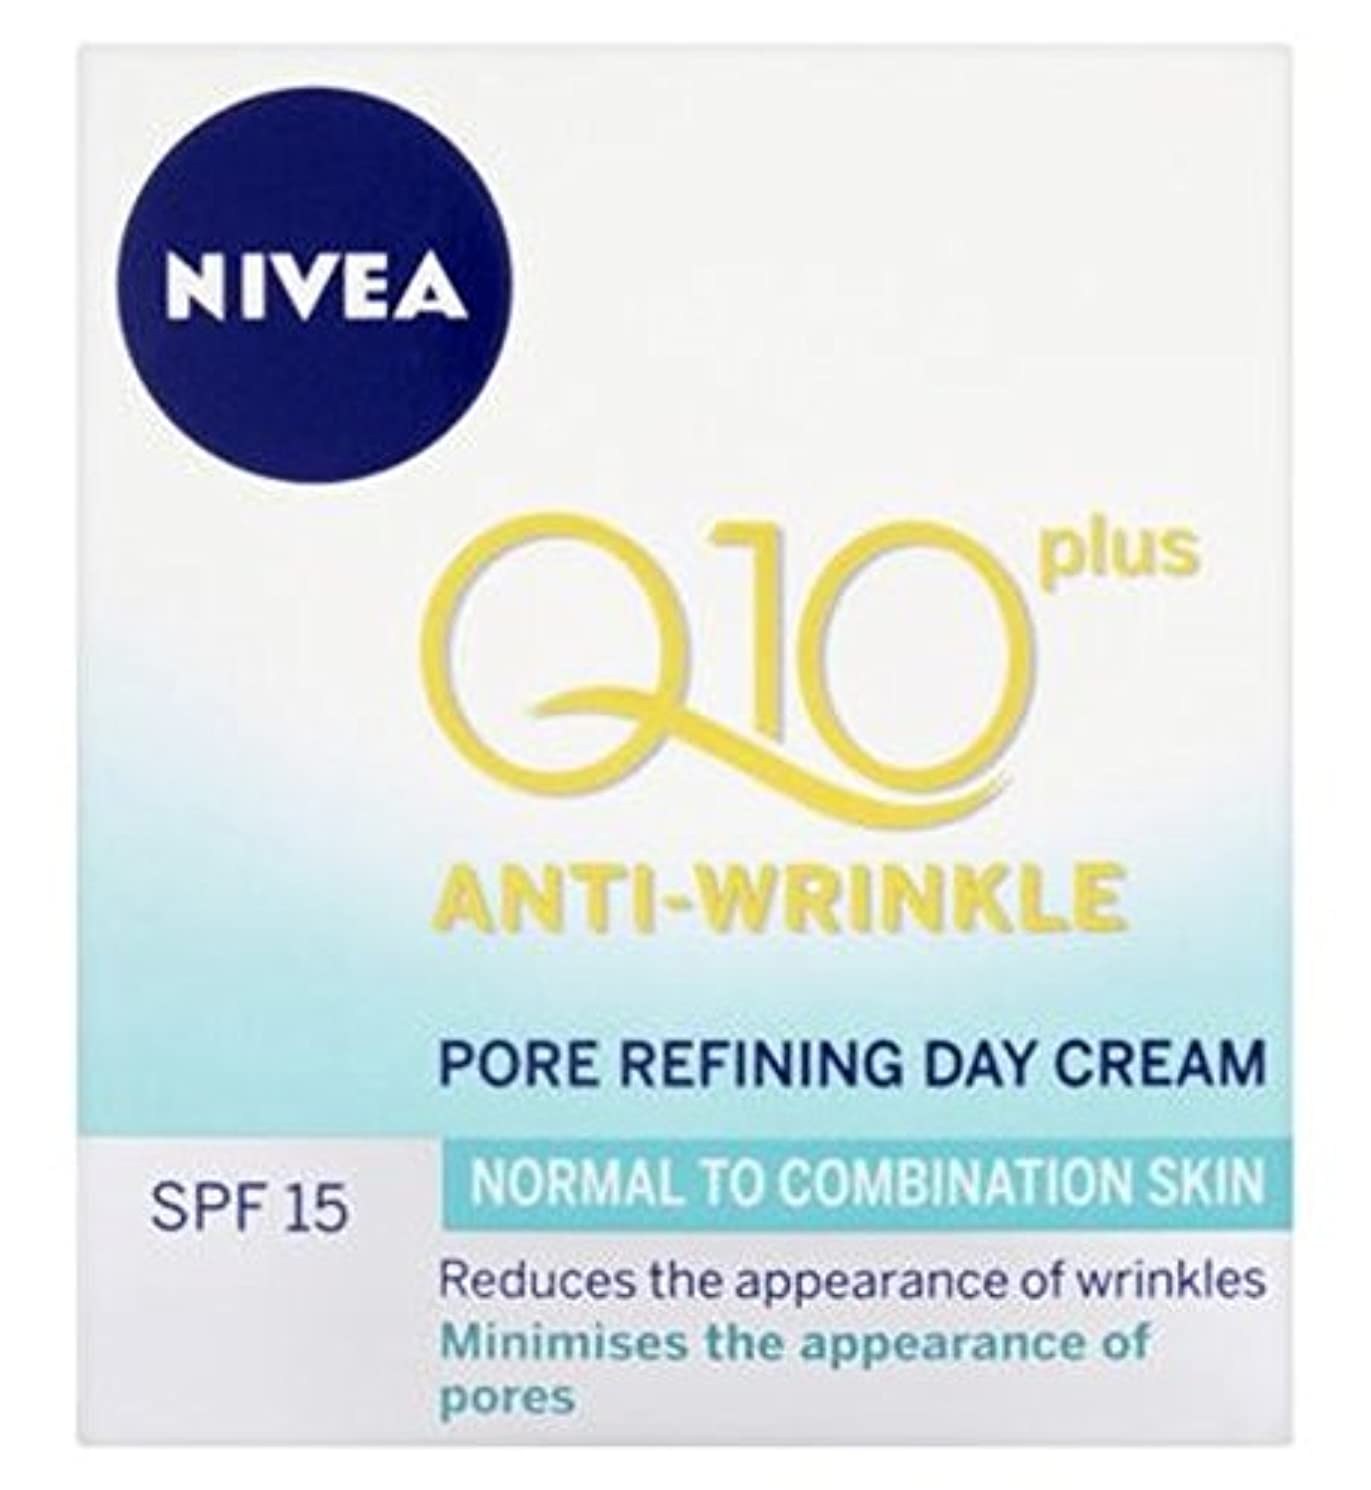 夫チャンピオンシップ立ち寄るNivea Daily Essentials Q10 Plus Anti-Wrinkle Pore Refining Day Cream For Normal to Combination Skin SPF15 50ml...